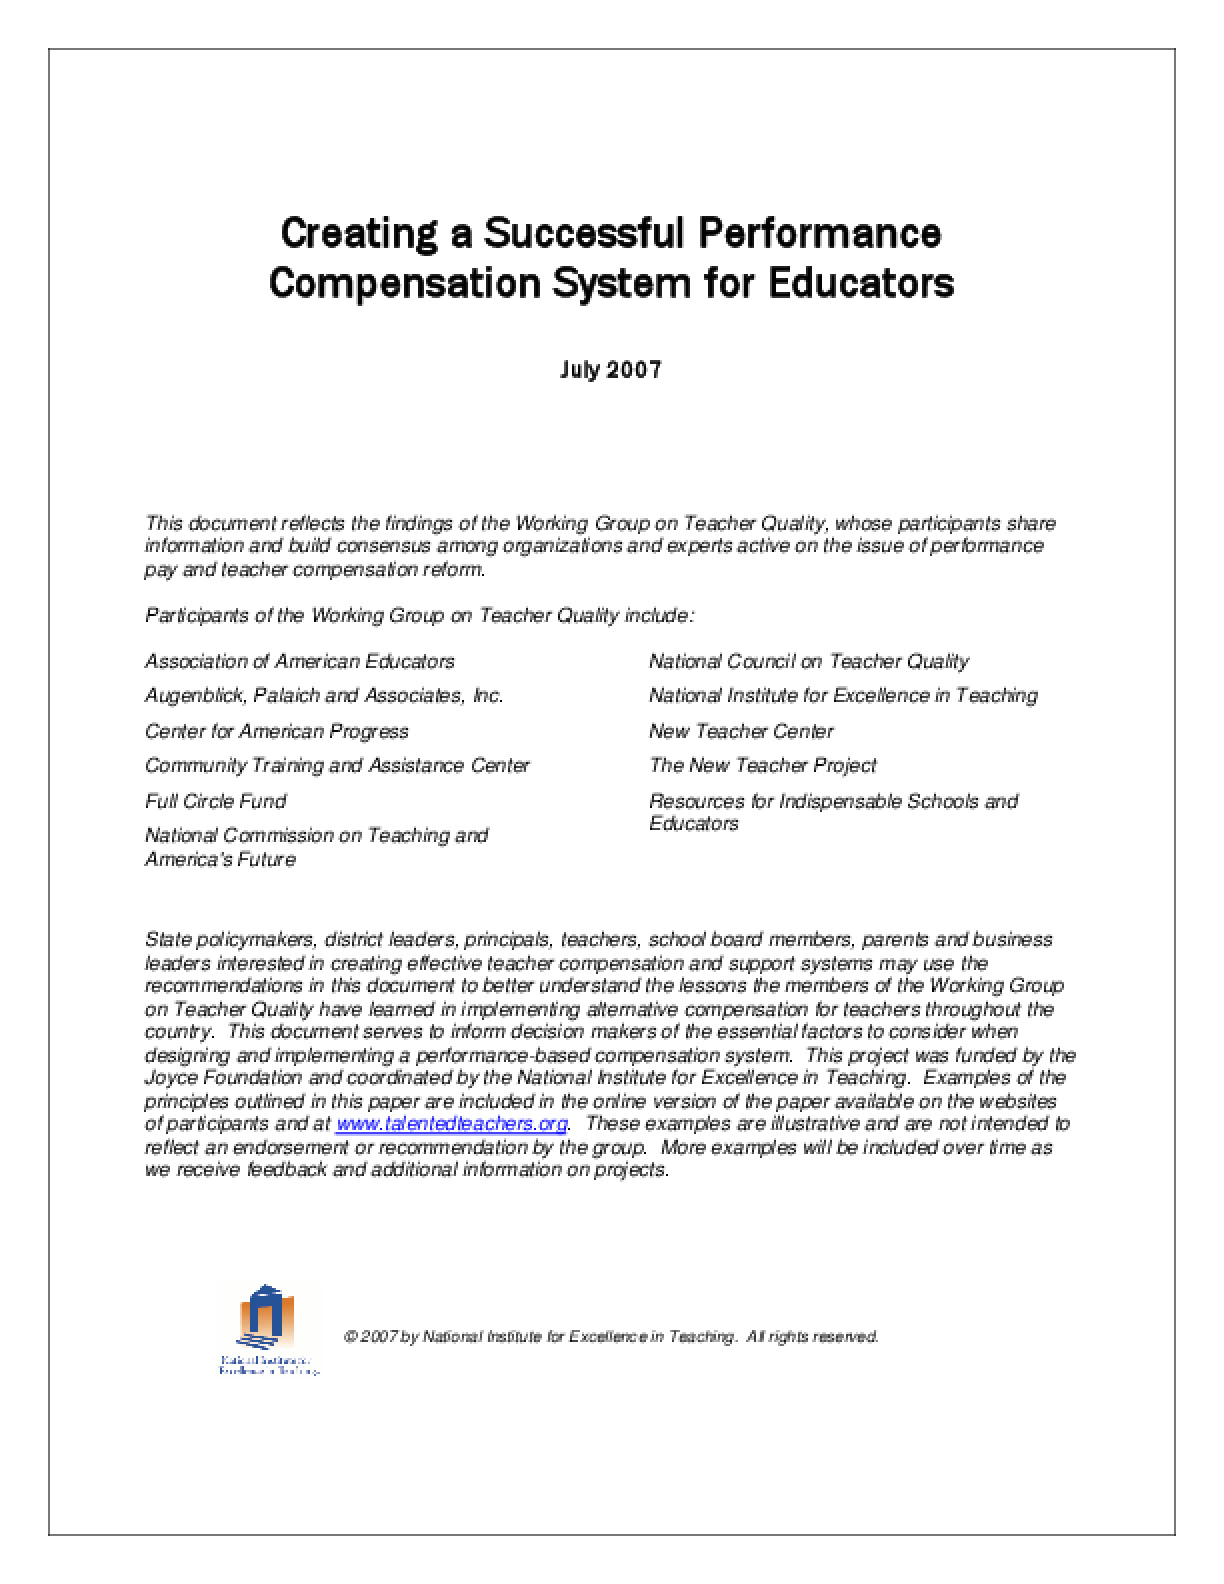 Creating a Successful Performance Compensation System for Educators